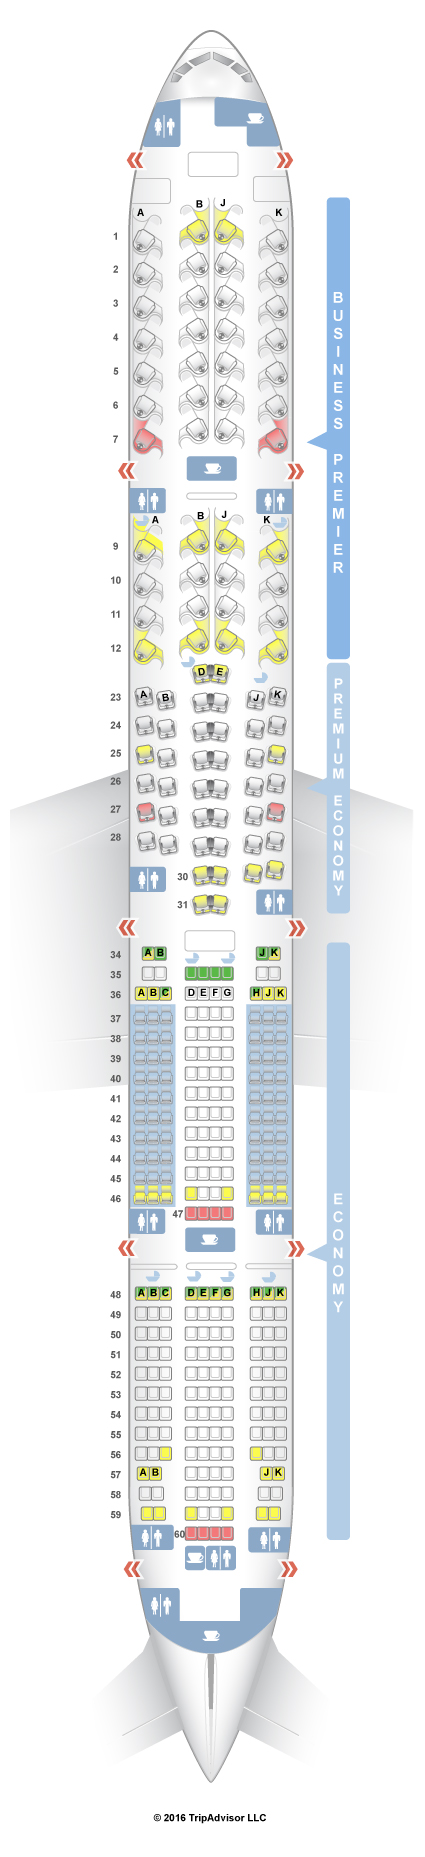 SeatGuru Seat Map Air New Zealand Boeing V - Japan airlines seat map 773